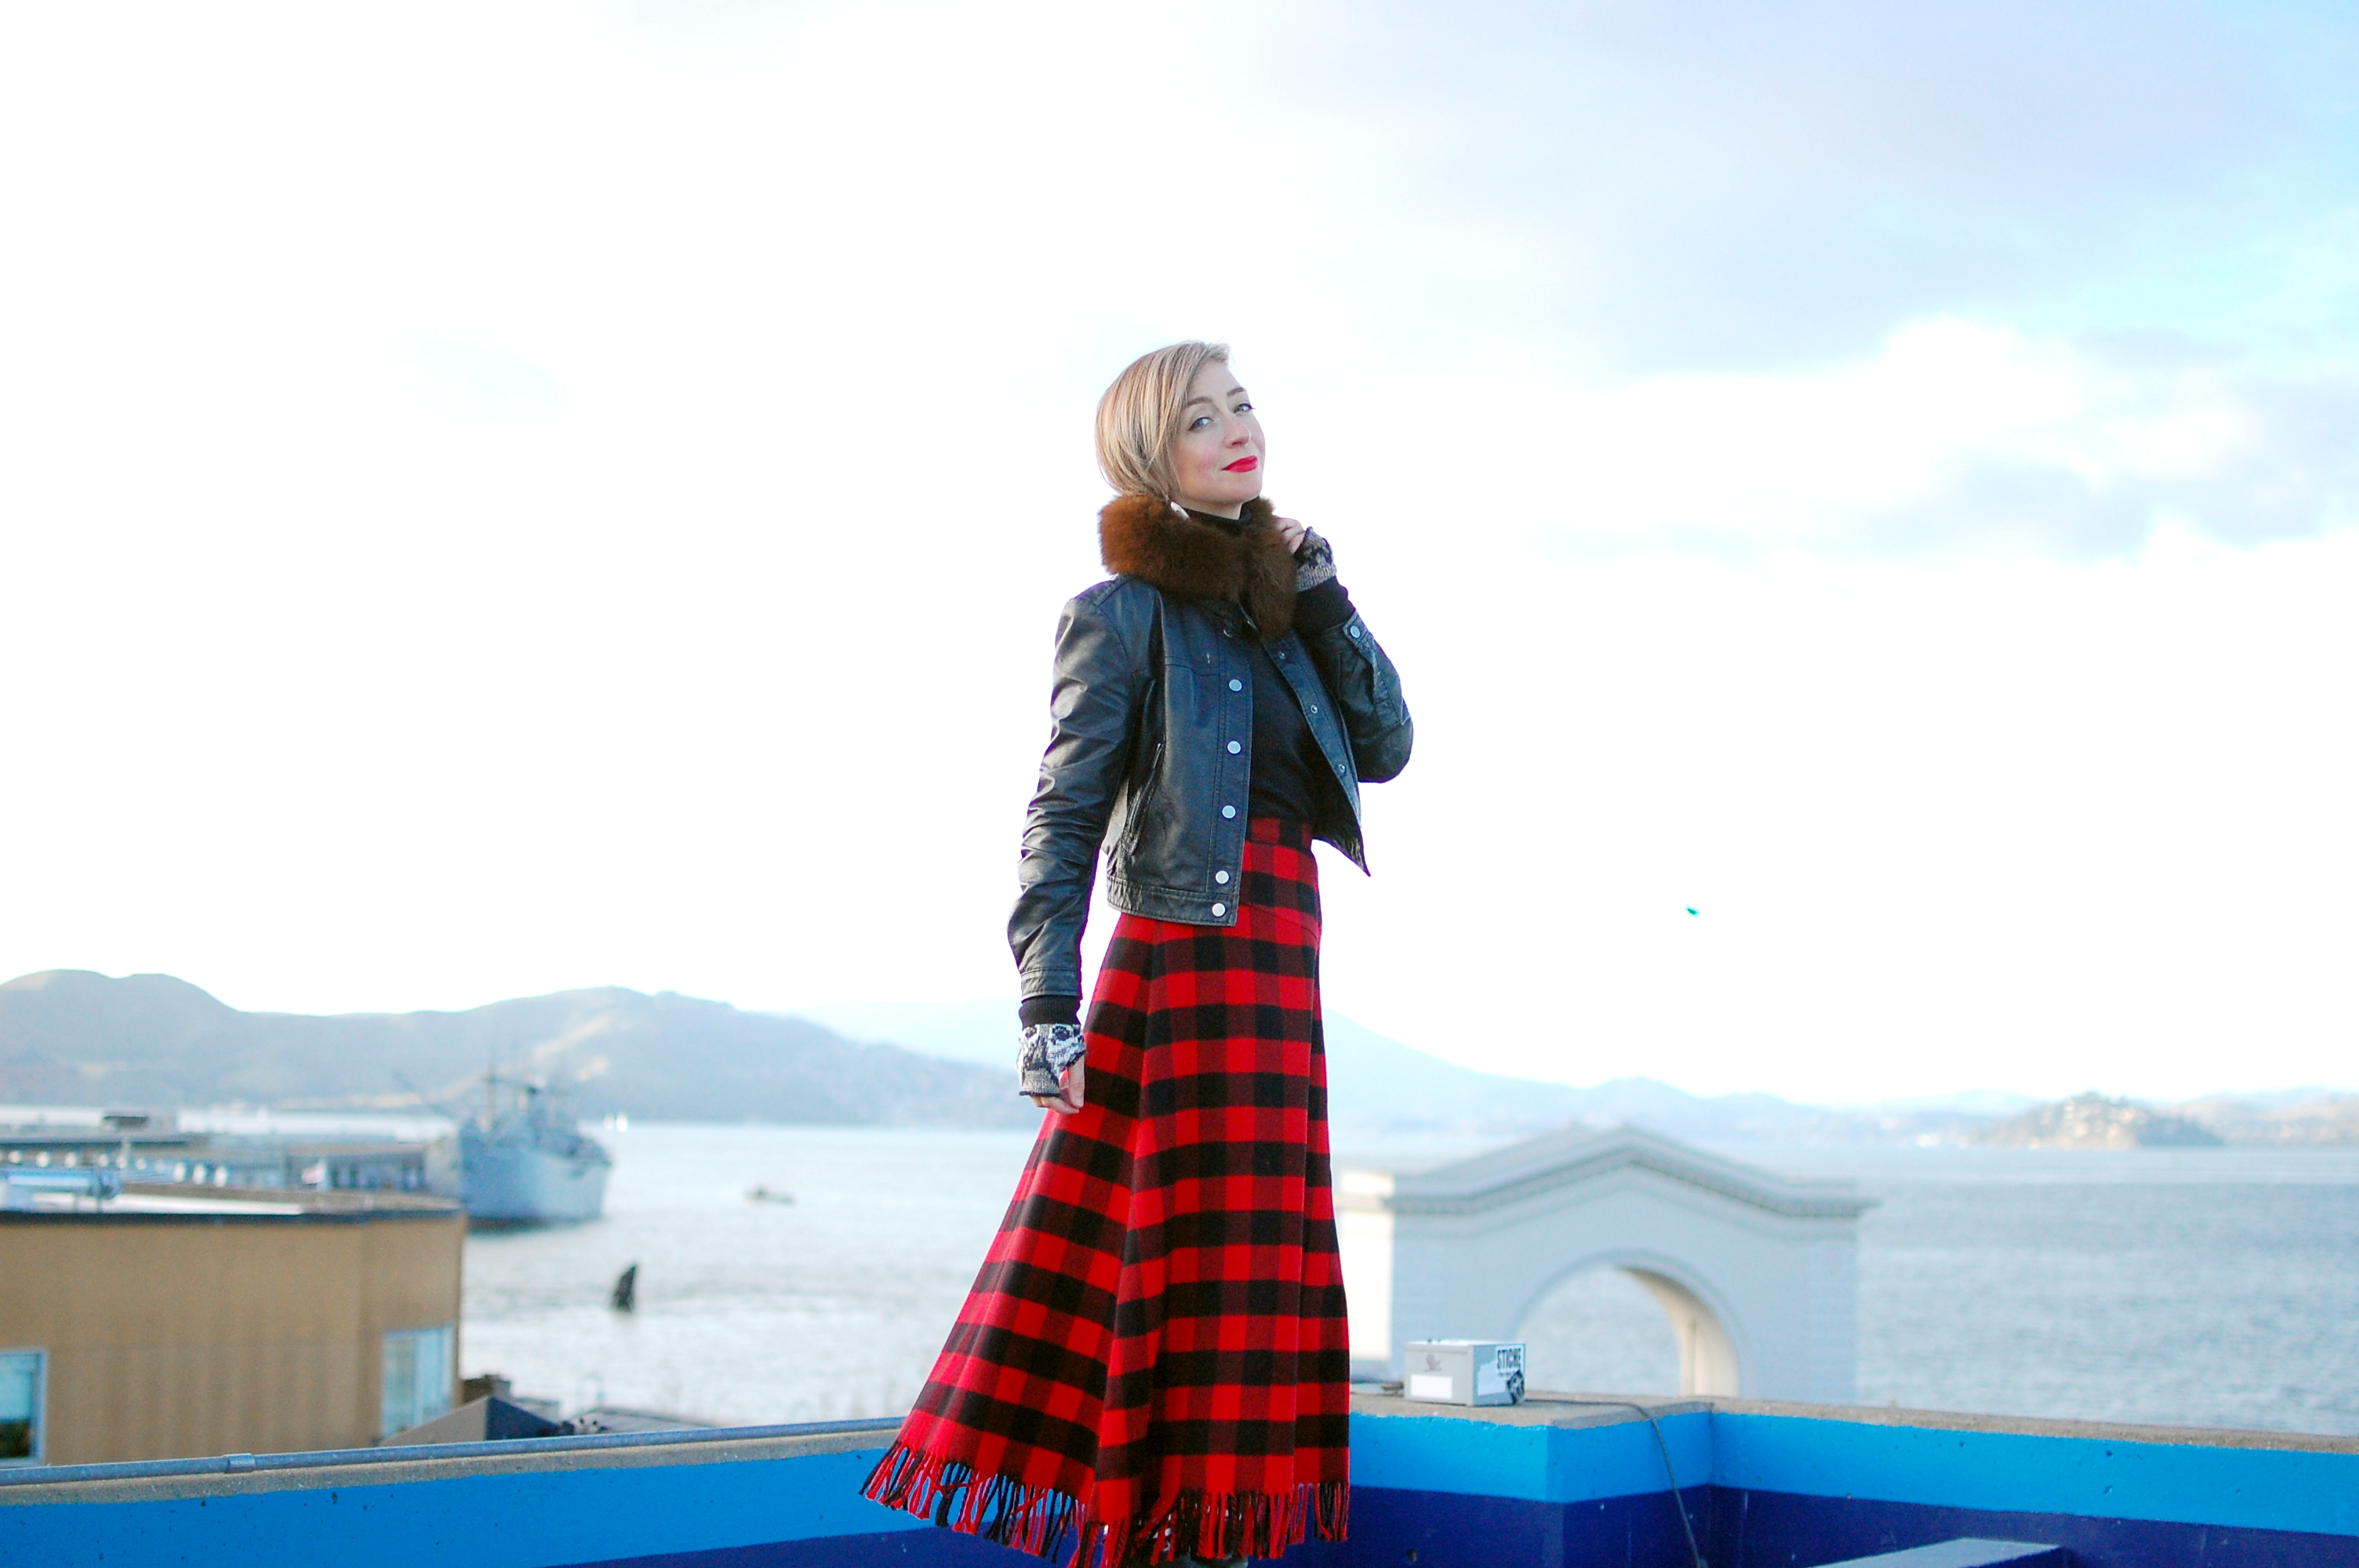 san francisco tourist outfit ootd buffalo plaid red black thrift consignment